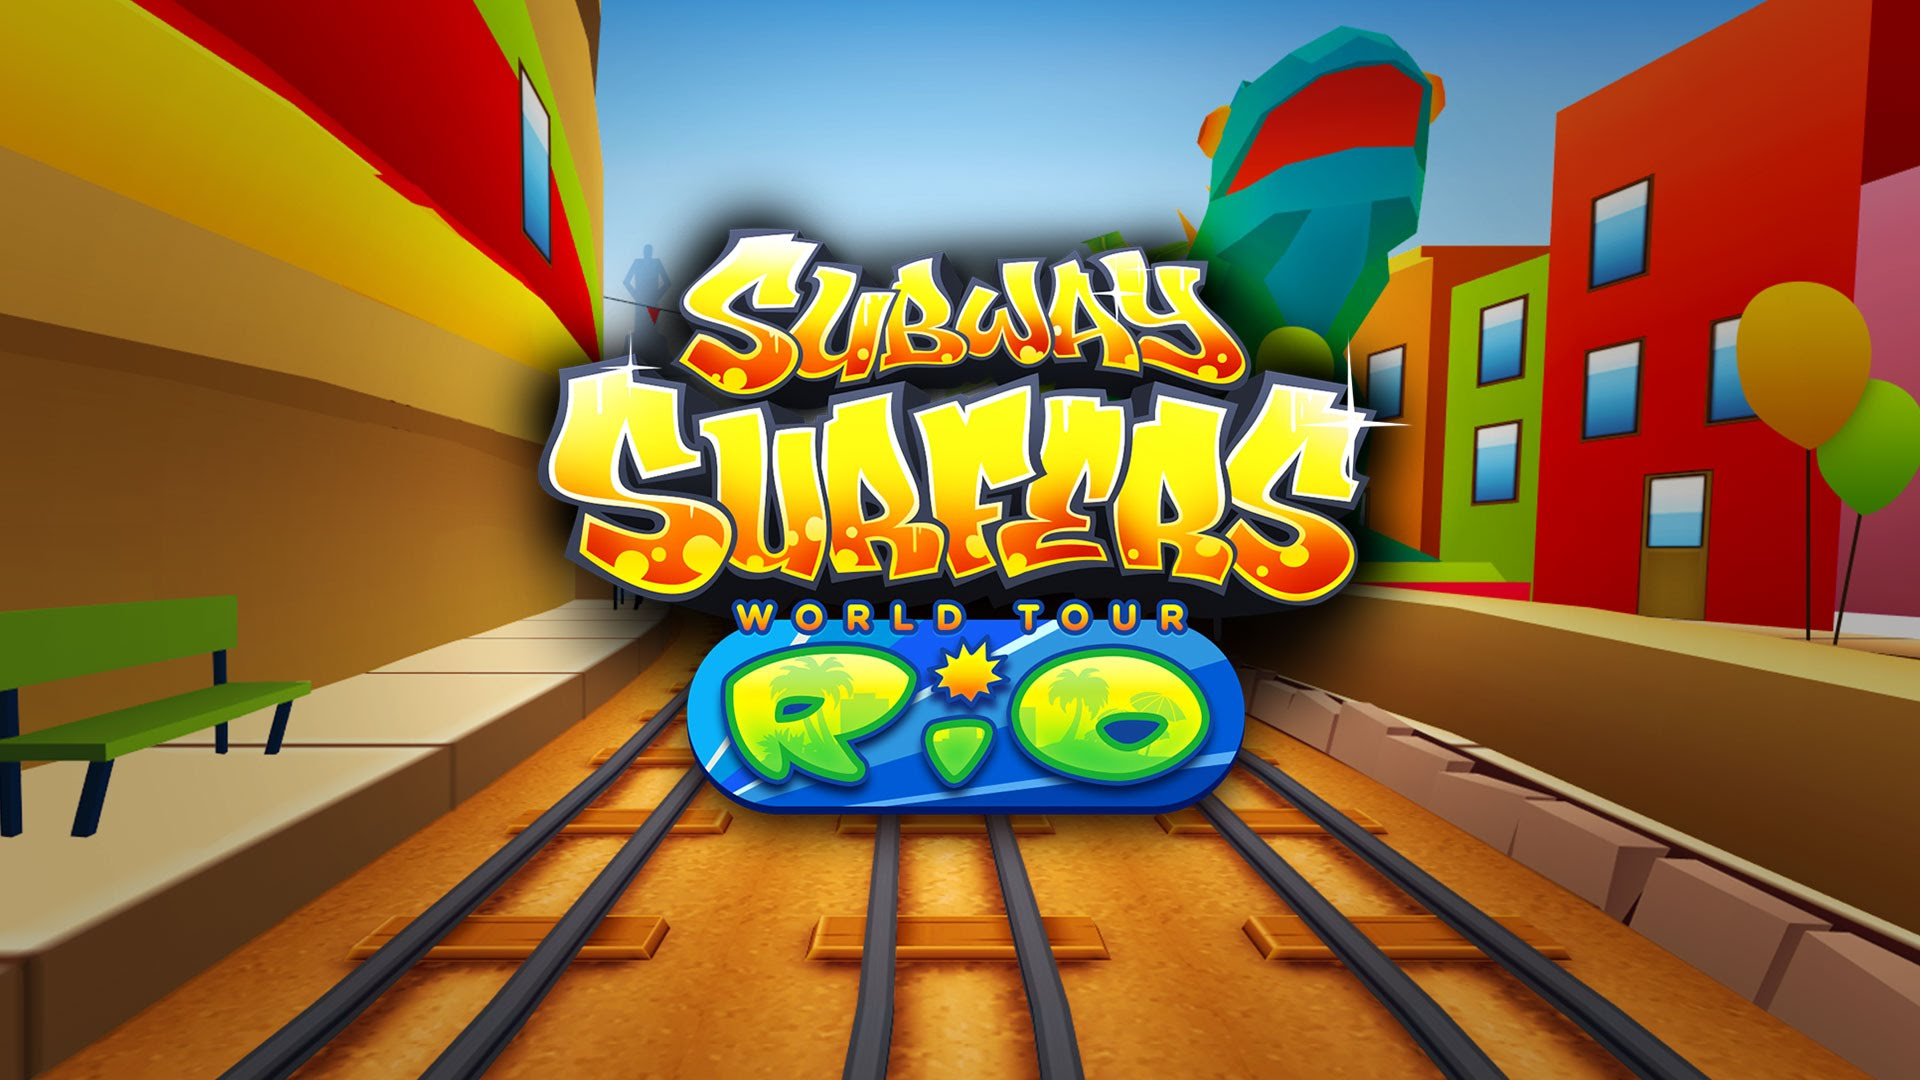 Subway Surfers Rio v1.59.1 Mod Apk (Updated) | AxeeTech